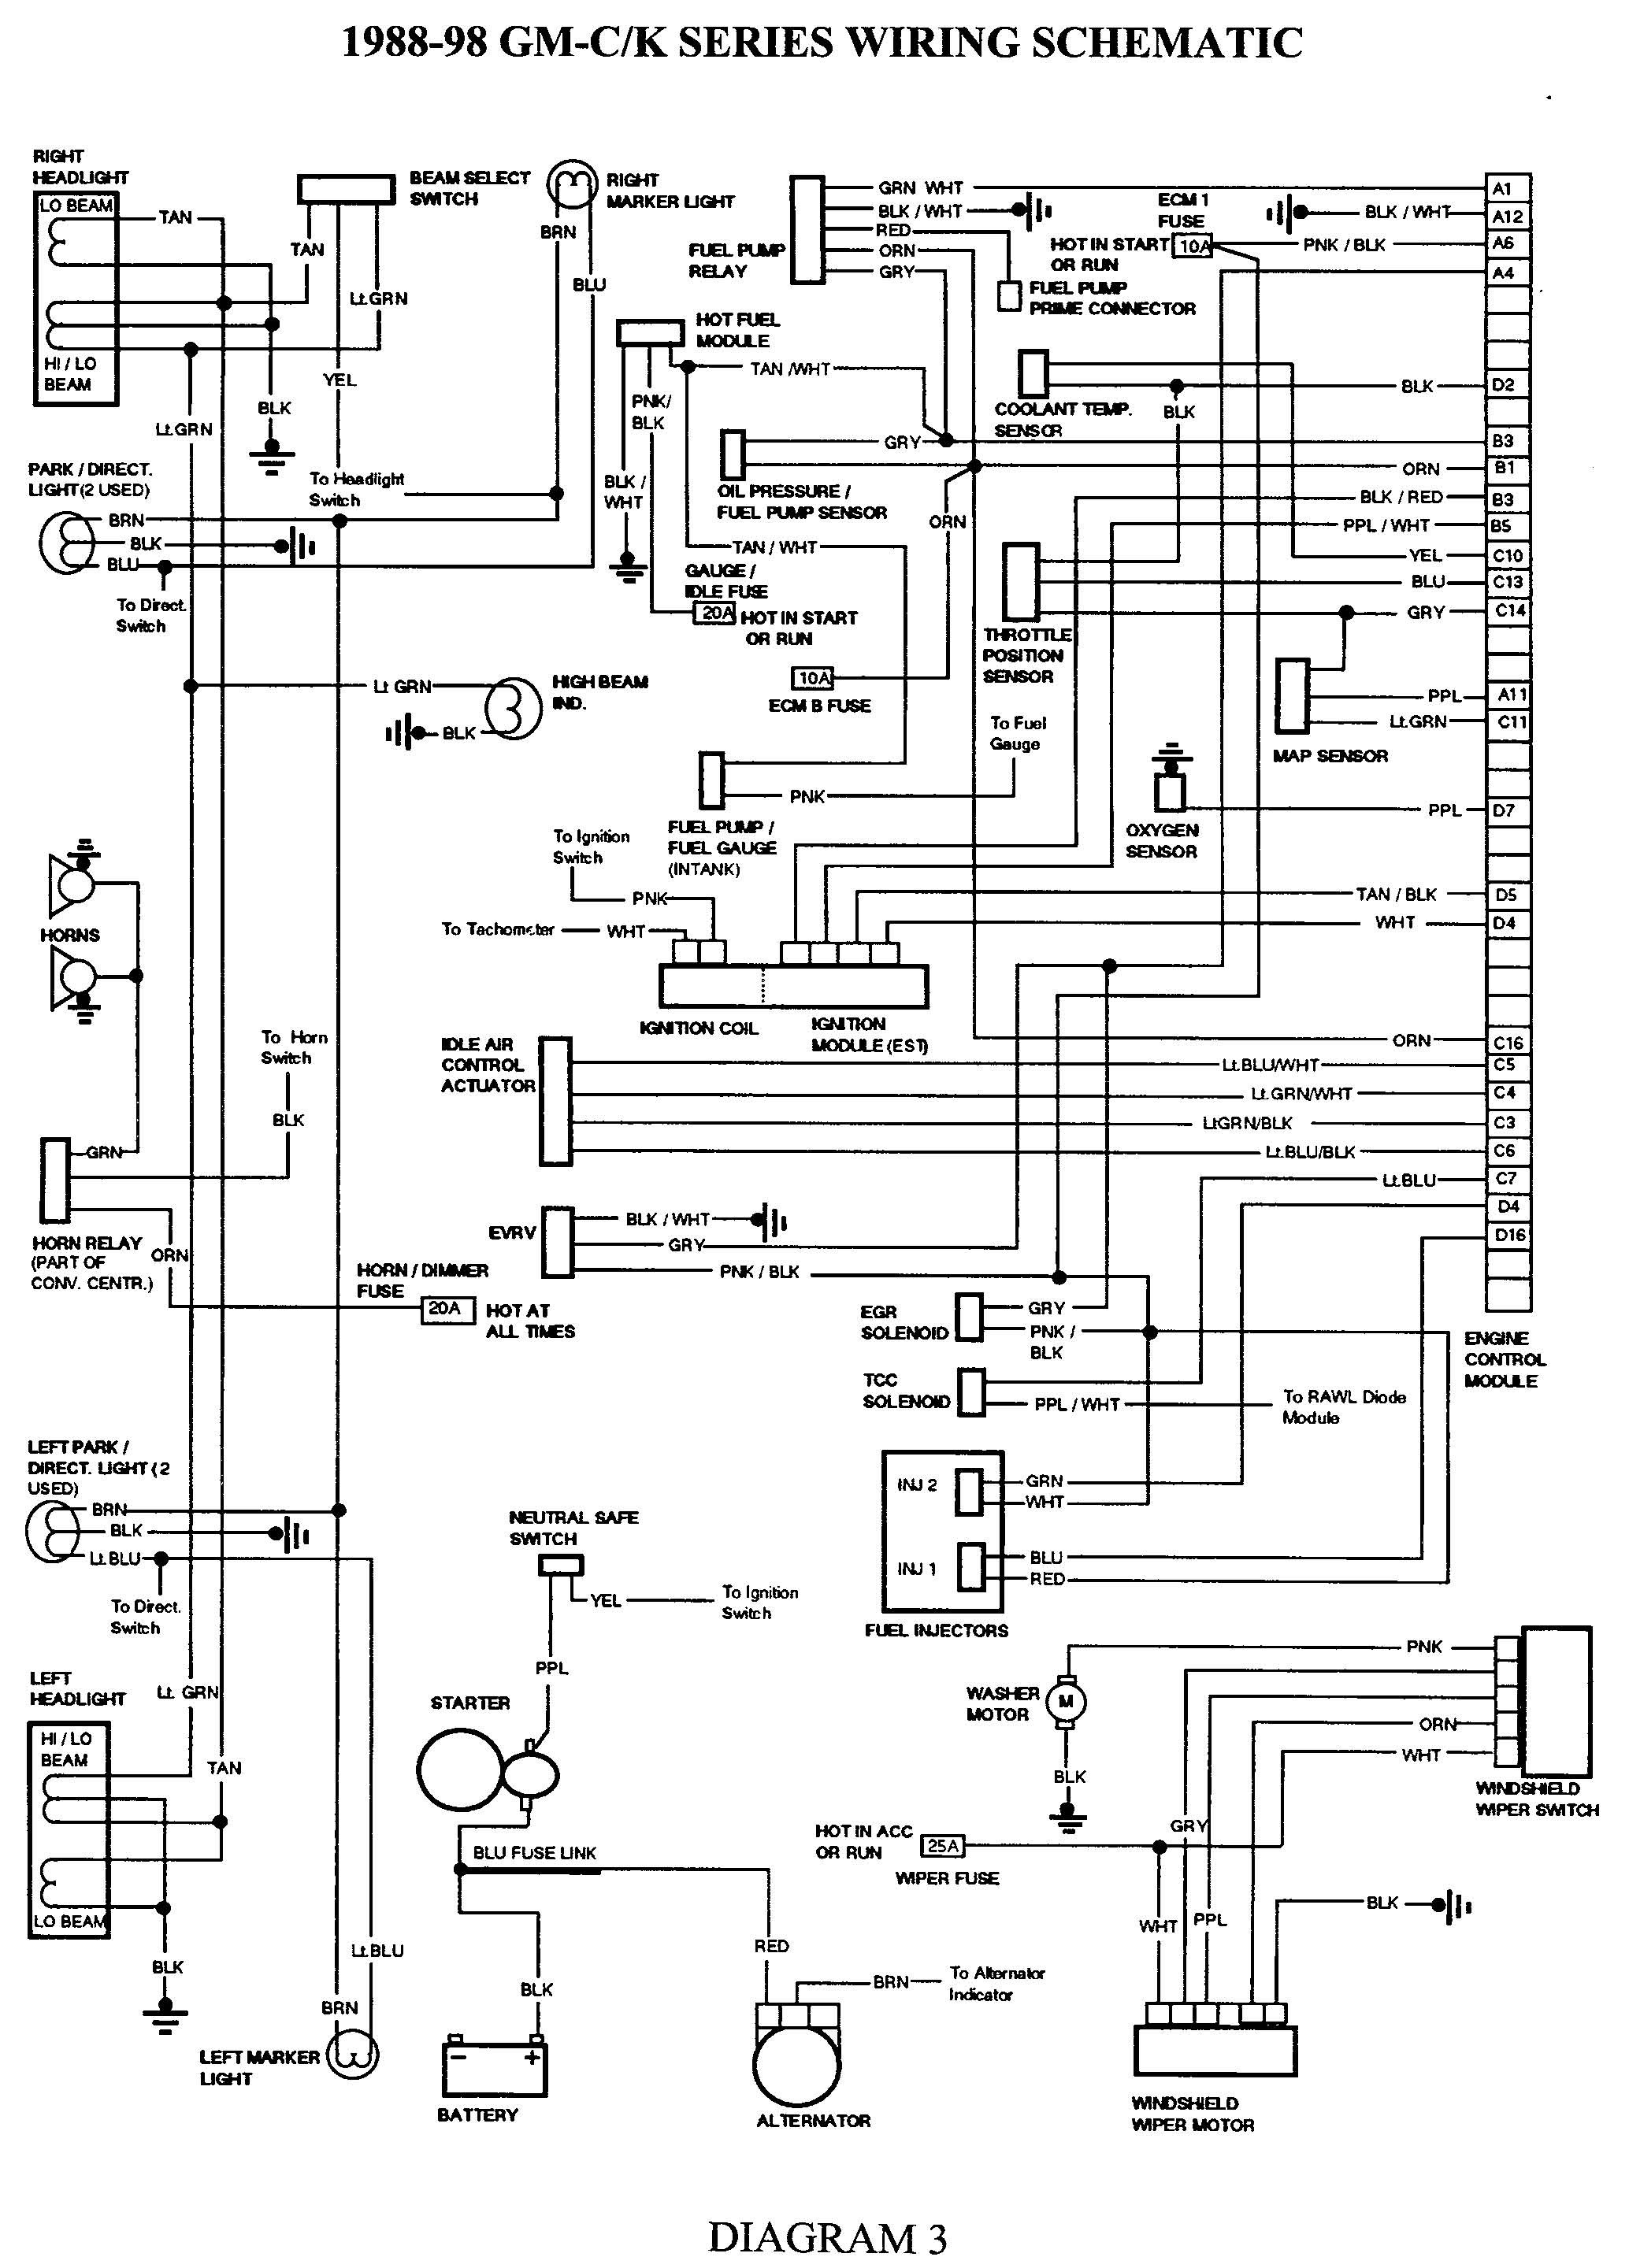 2000 Silverado Horn Wiring Diagram Wiring Diagram \u2022 Chevy Avalanche  Hose Diagram Wiring Diagram Chevy Avalanche